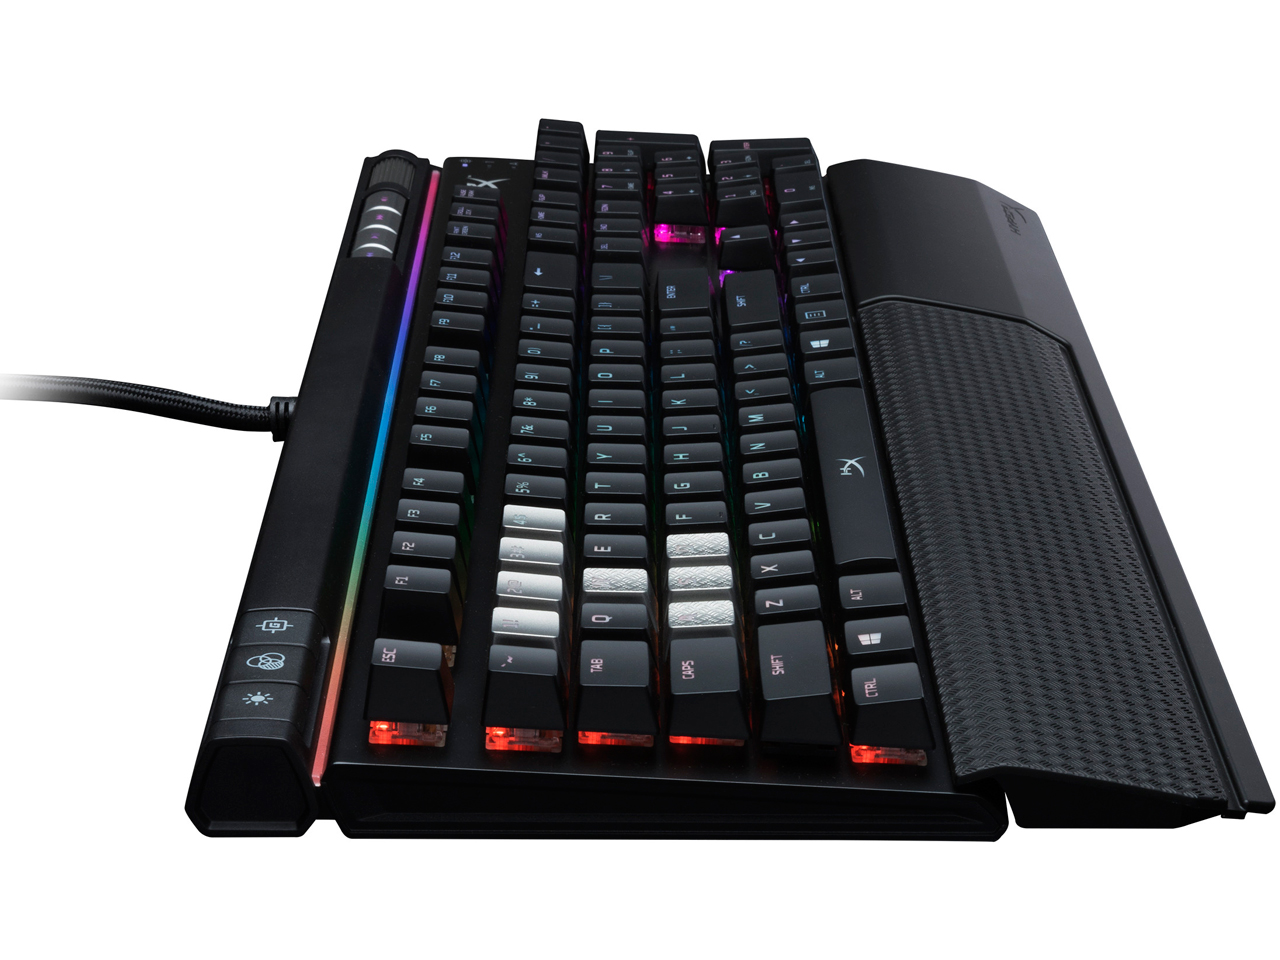 『本体5』 HyperX Alloy Elite RGB HX-KB2RD2-US/R1 赤軸 の製品画像